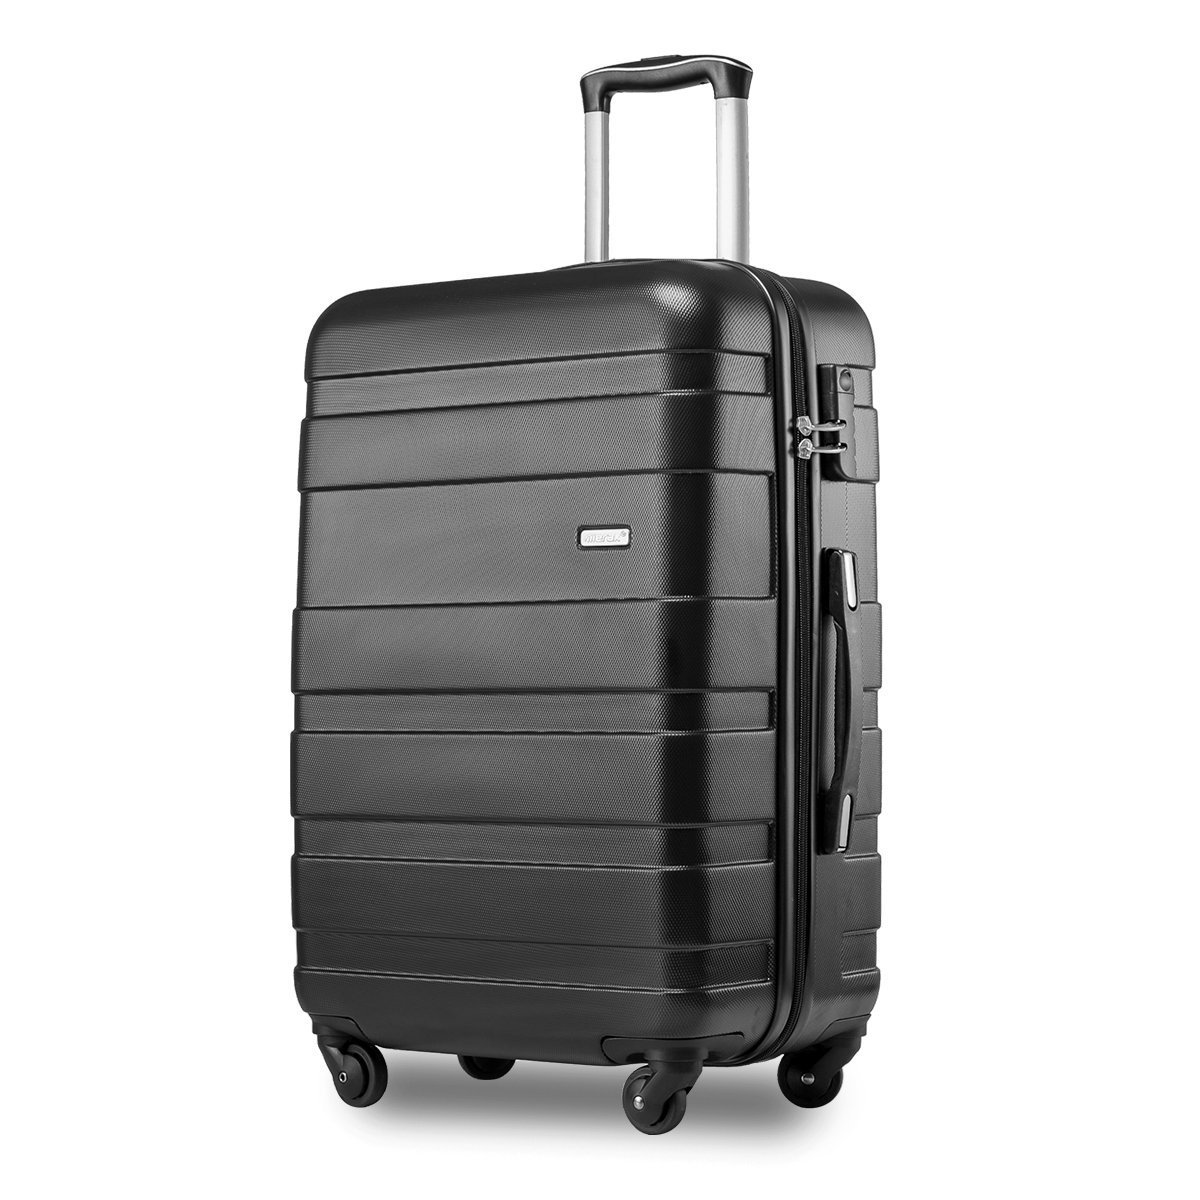 Merax ® Super Lightweight ABS Hard Shell Travel Carry On Cabin Hand Luggage Suitcase with 4 Wheels, Approved for Ryanair, Easyjet, British Airways, Virgin Atlantic, Flybe and Many More (Carry On, black)